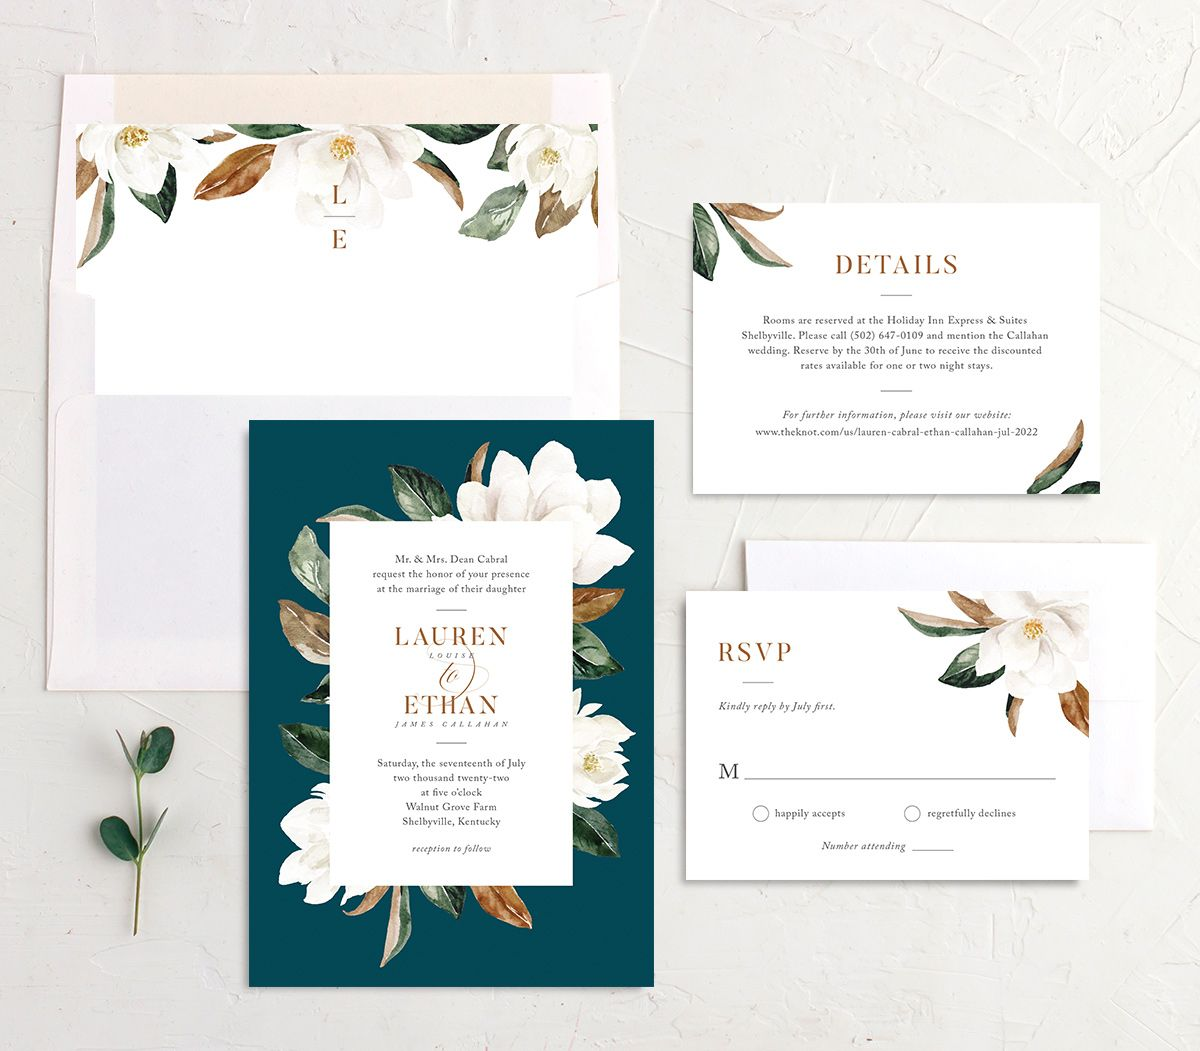 painted magnolia wedding invitation suite in teal